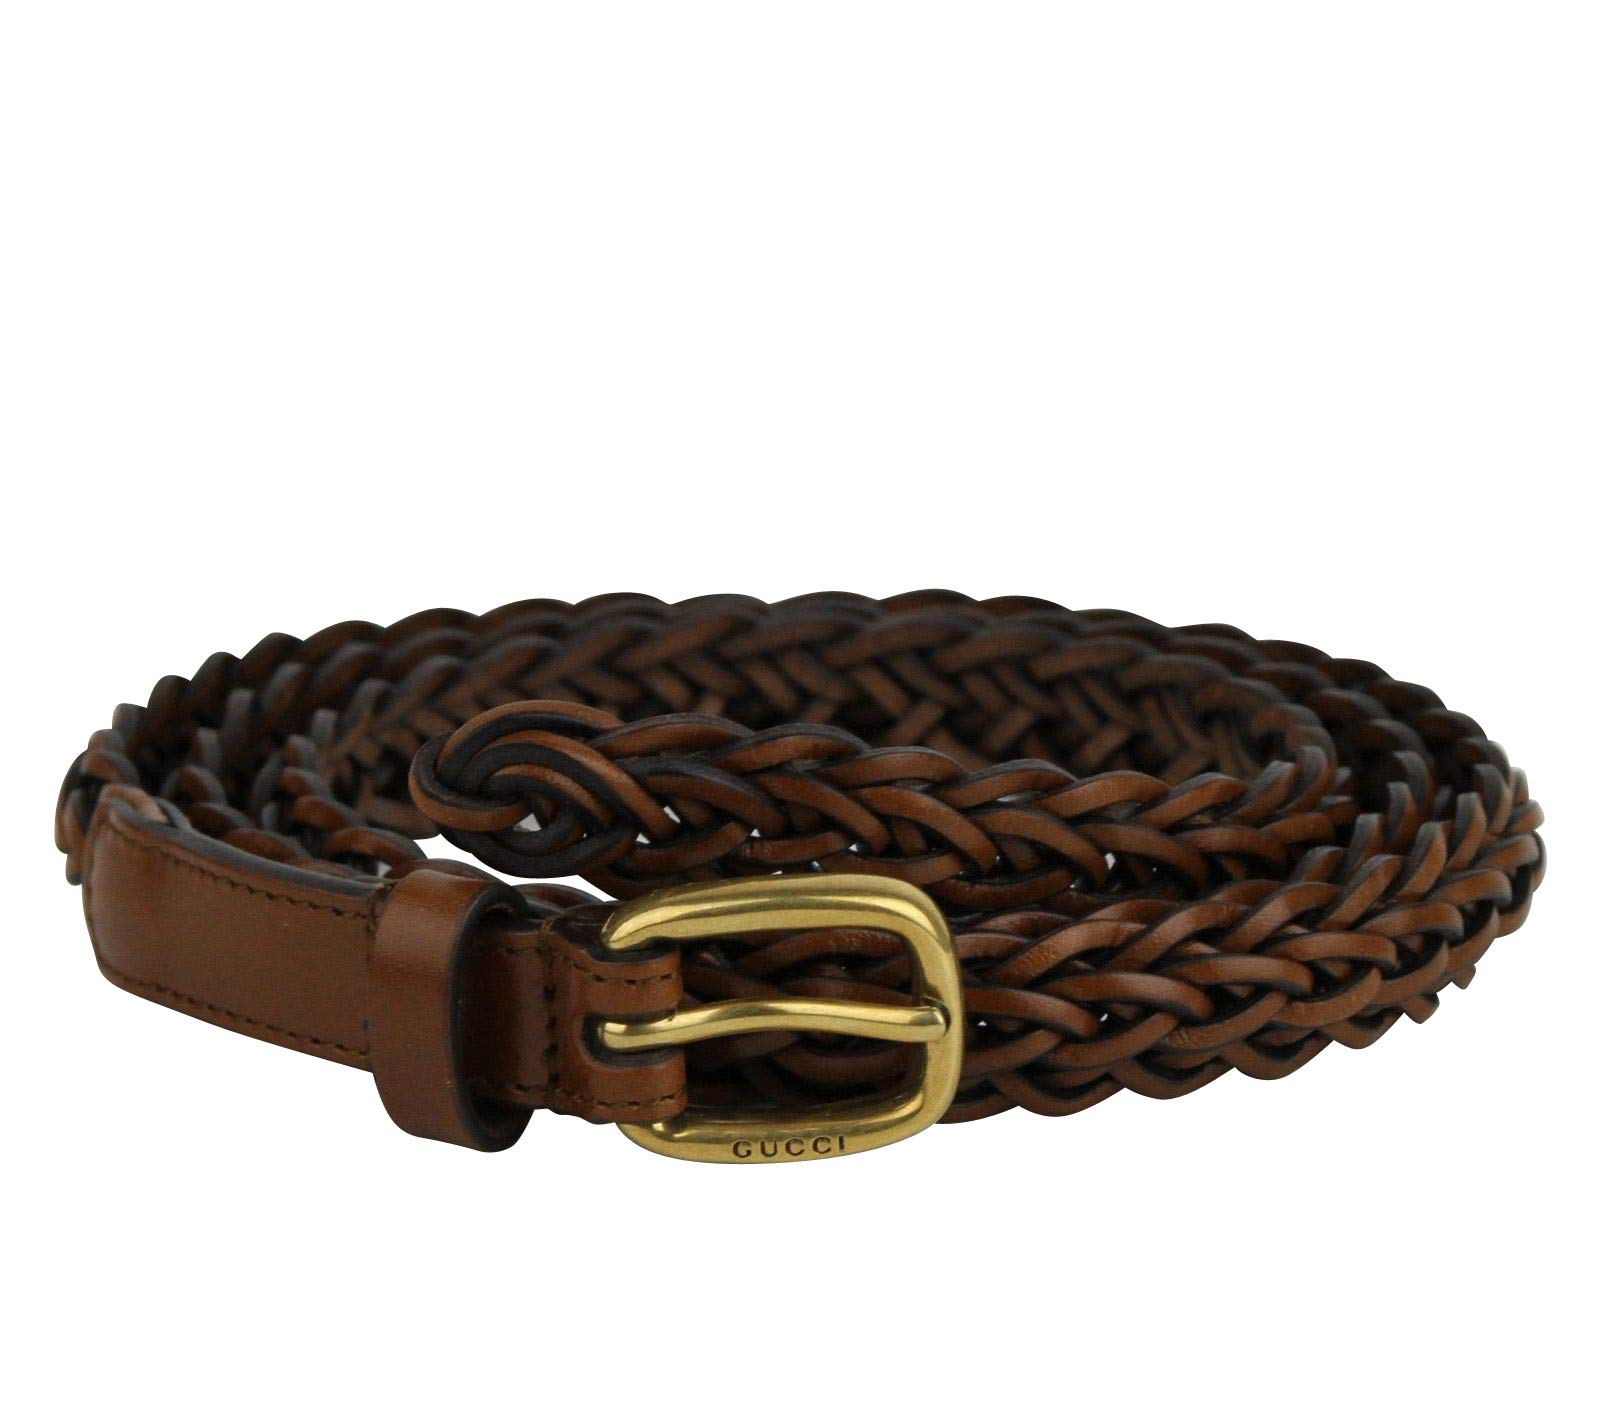 b5318f0ab59 Gucci Women s Gold Buckle Brown Braided Leather Skinny Belt 380607 2535  (95 38)